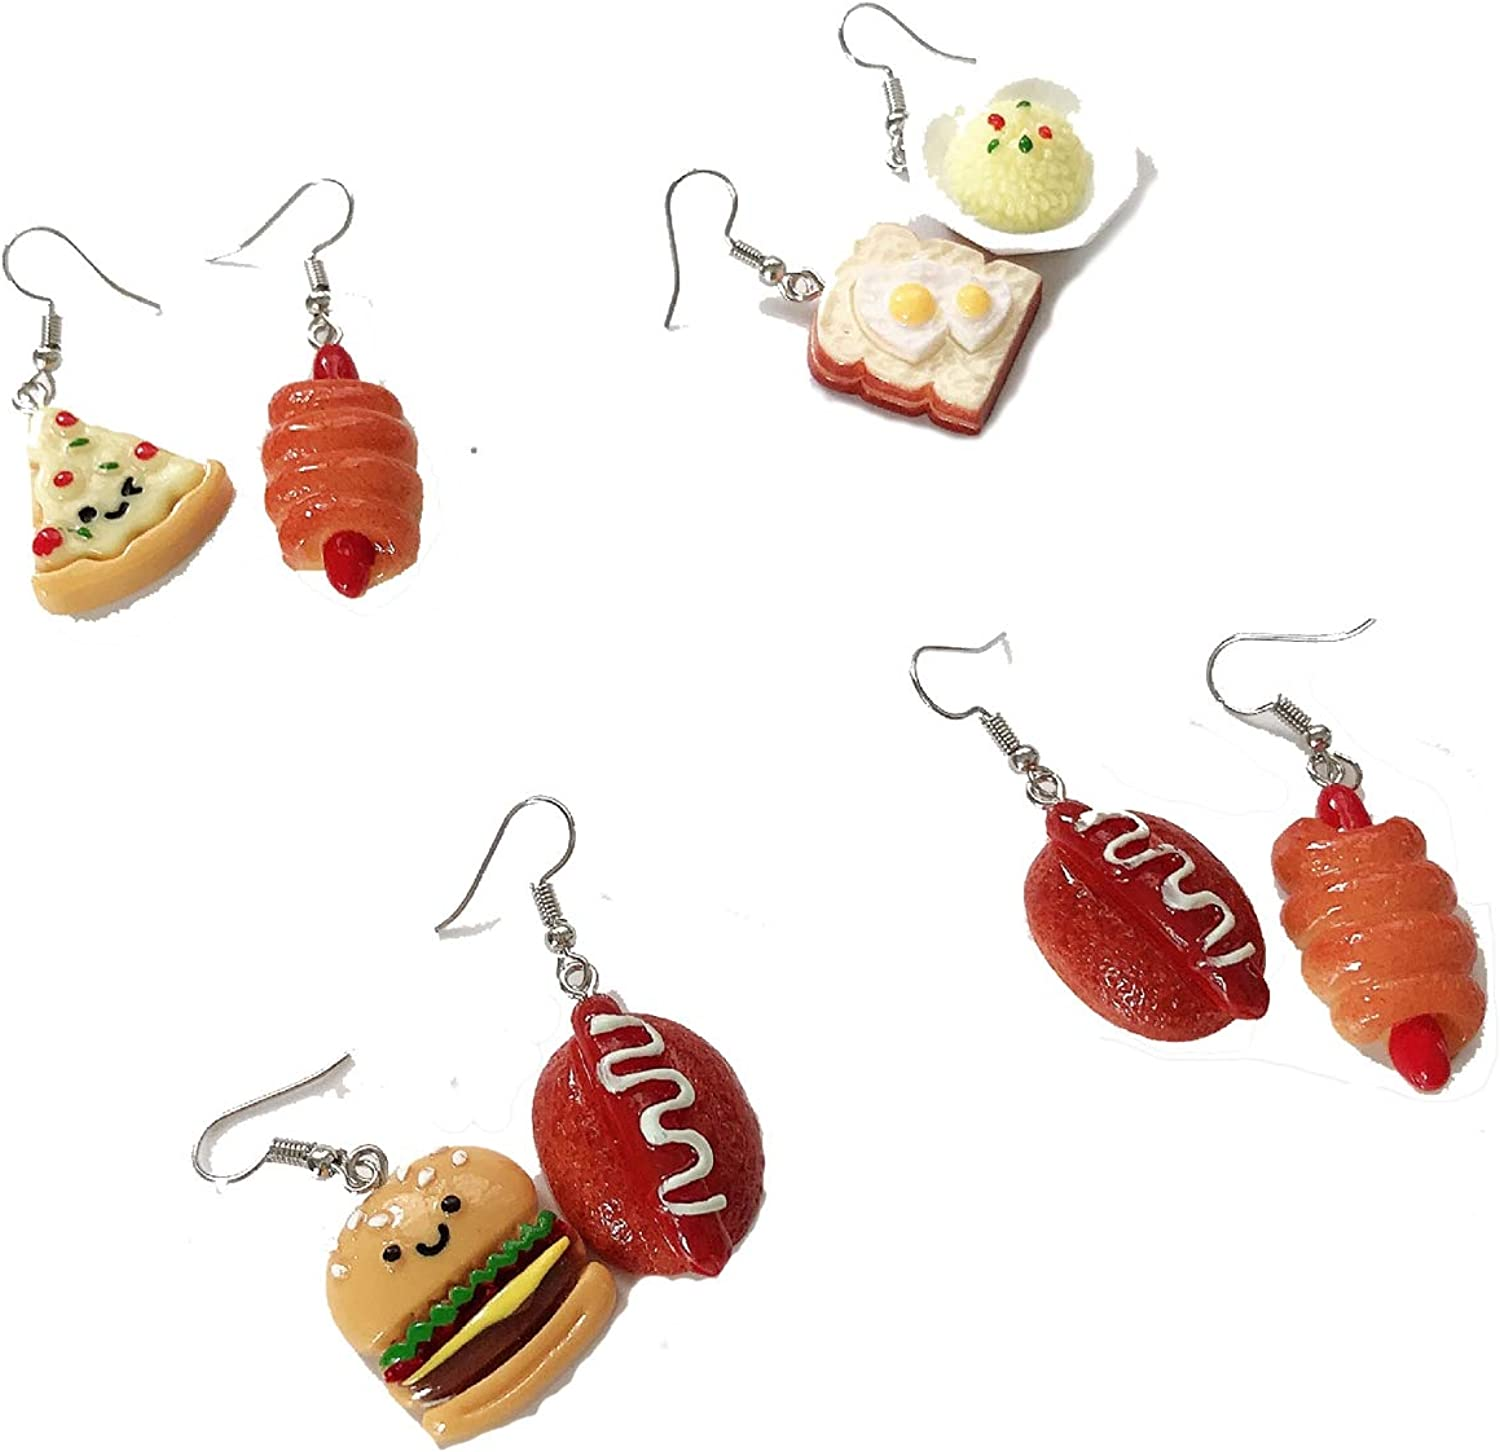 4-12 Pairs Handmade Resin Simulation food Croissant French Bread Toast Dangle Drop Earrings Cute Unique Donut Sandwich Pizza Hamburger Earrings Set for Women Girls Jewelry